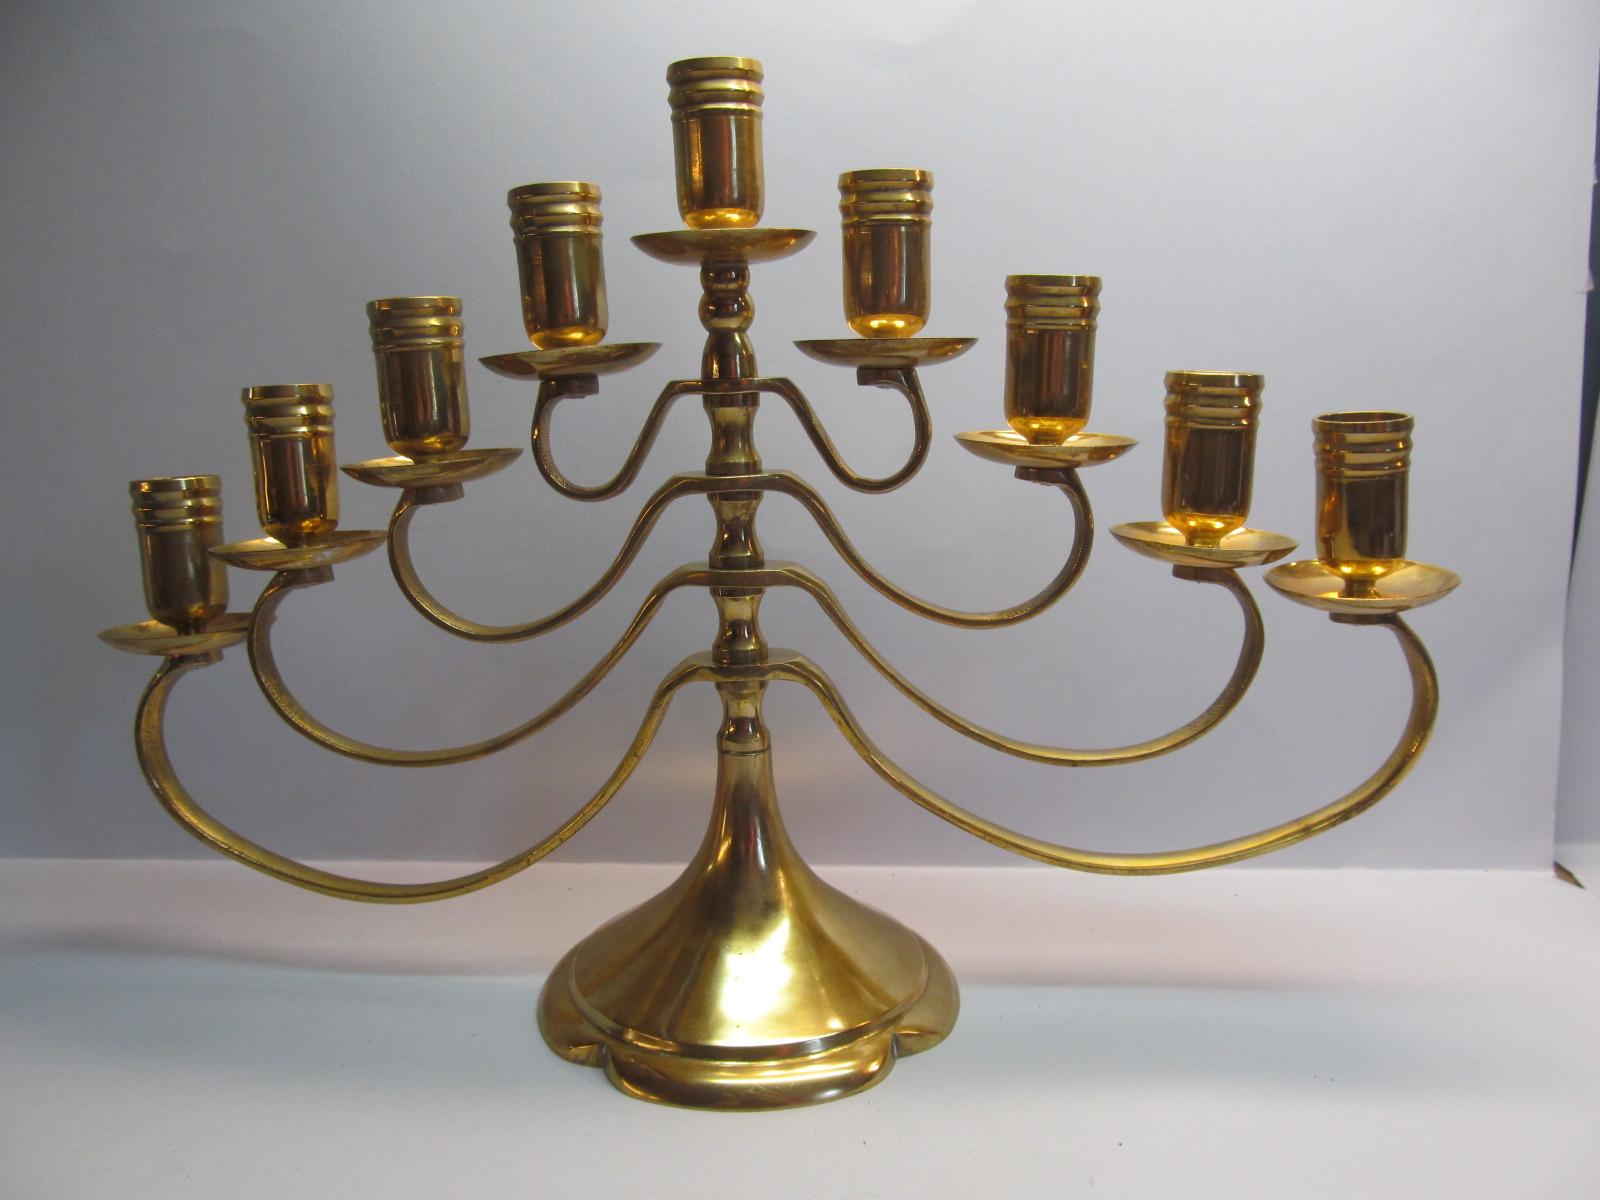 Brass Menorah 9 Cup Candlestick Holder In Japan